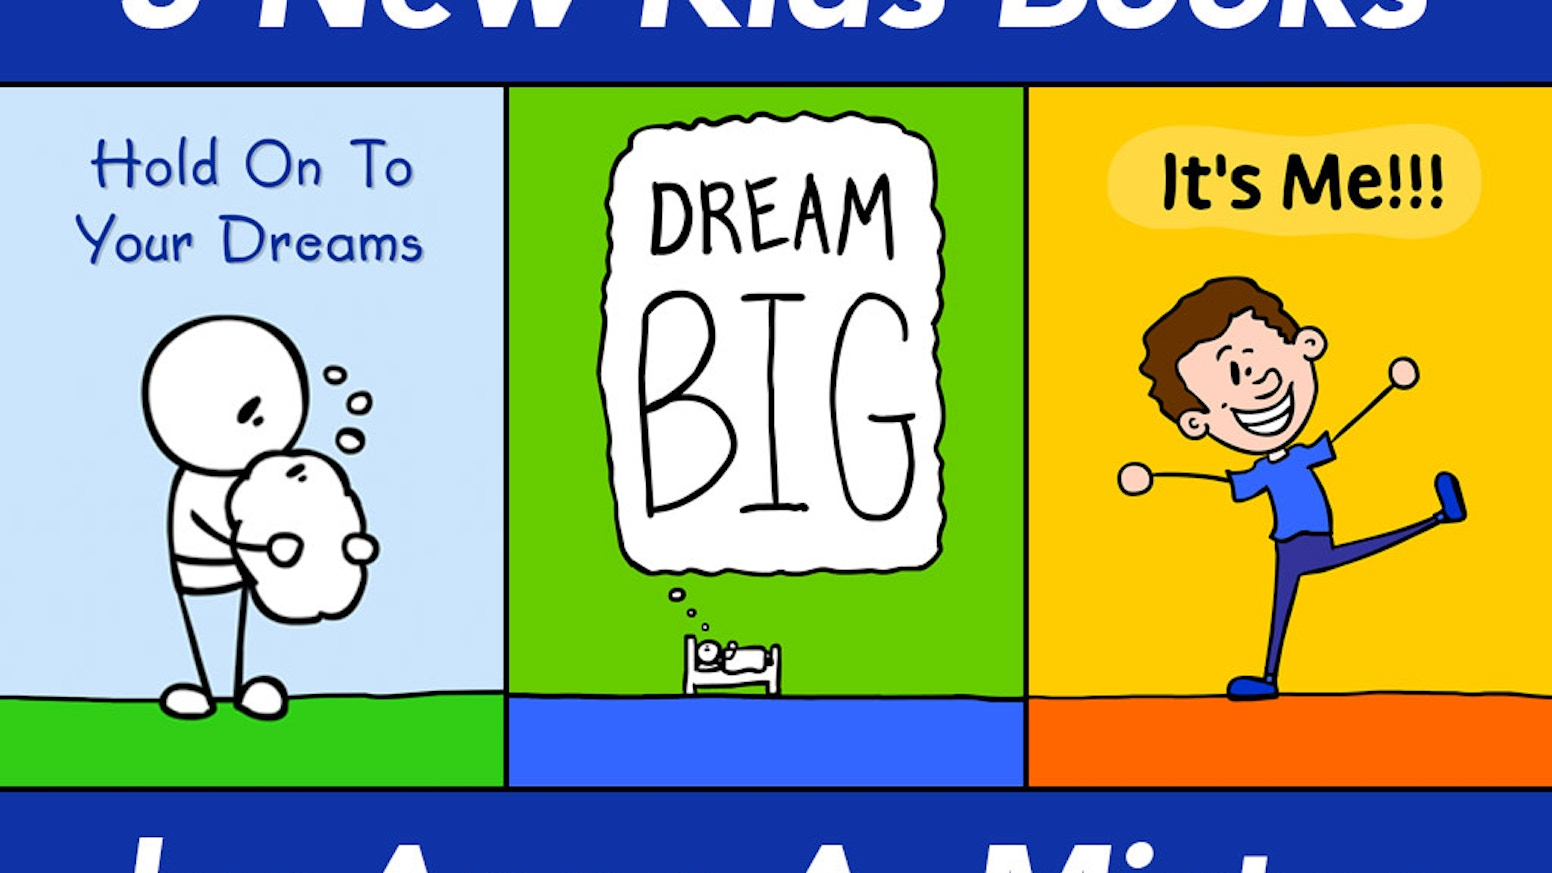 805a28aecb3fb 3 Kids Books: Hold on to your Dreams, Dream Big, It's Me!!! by Anon ...